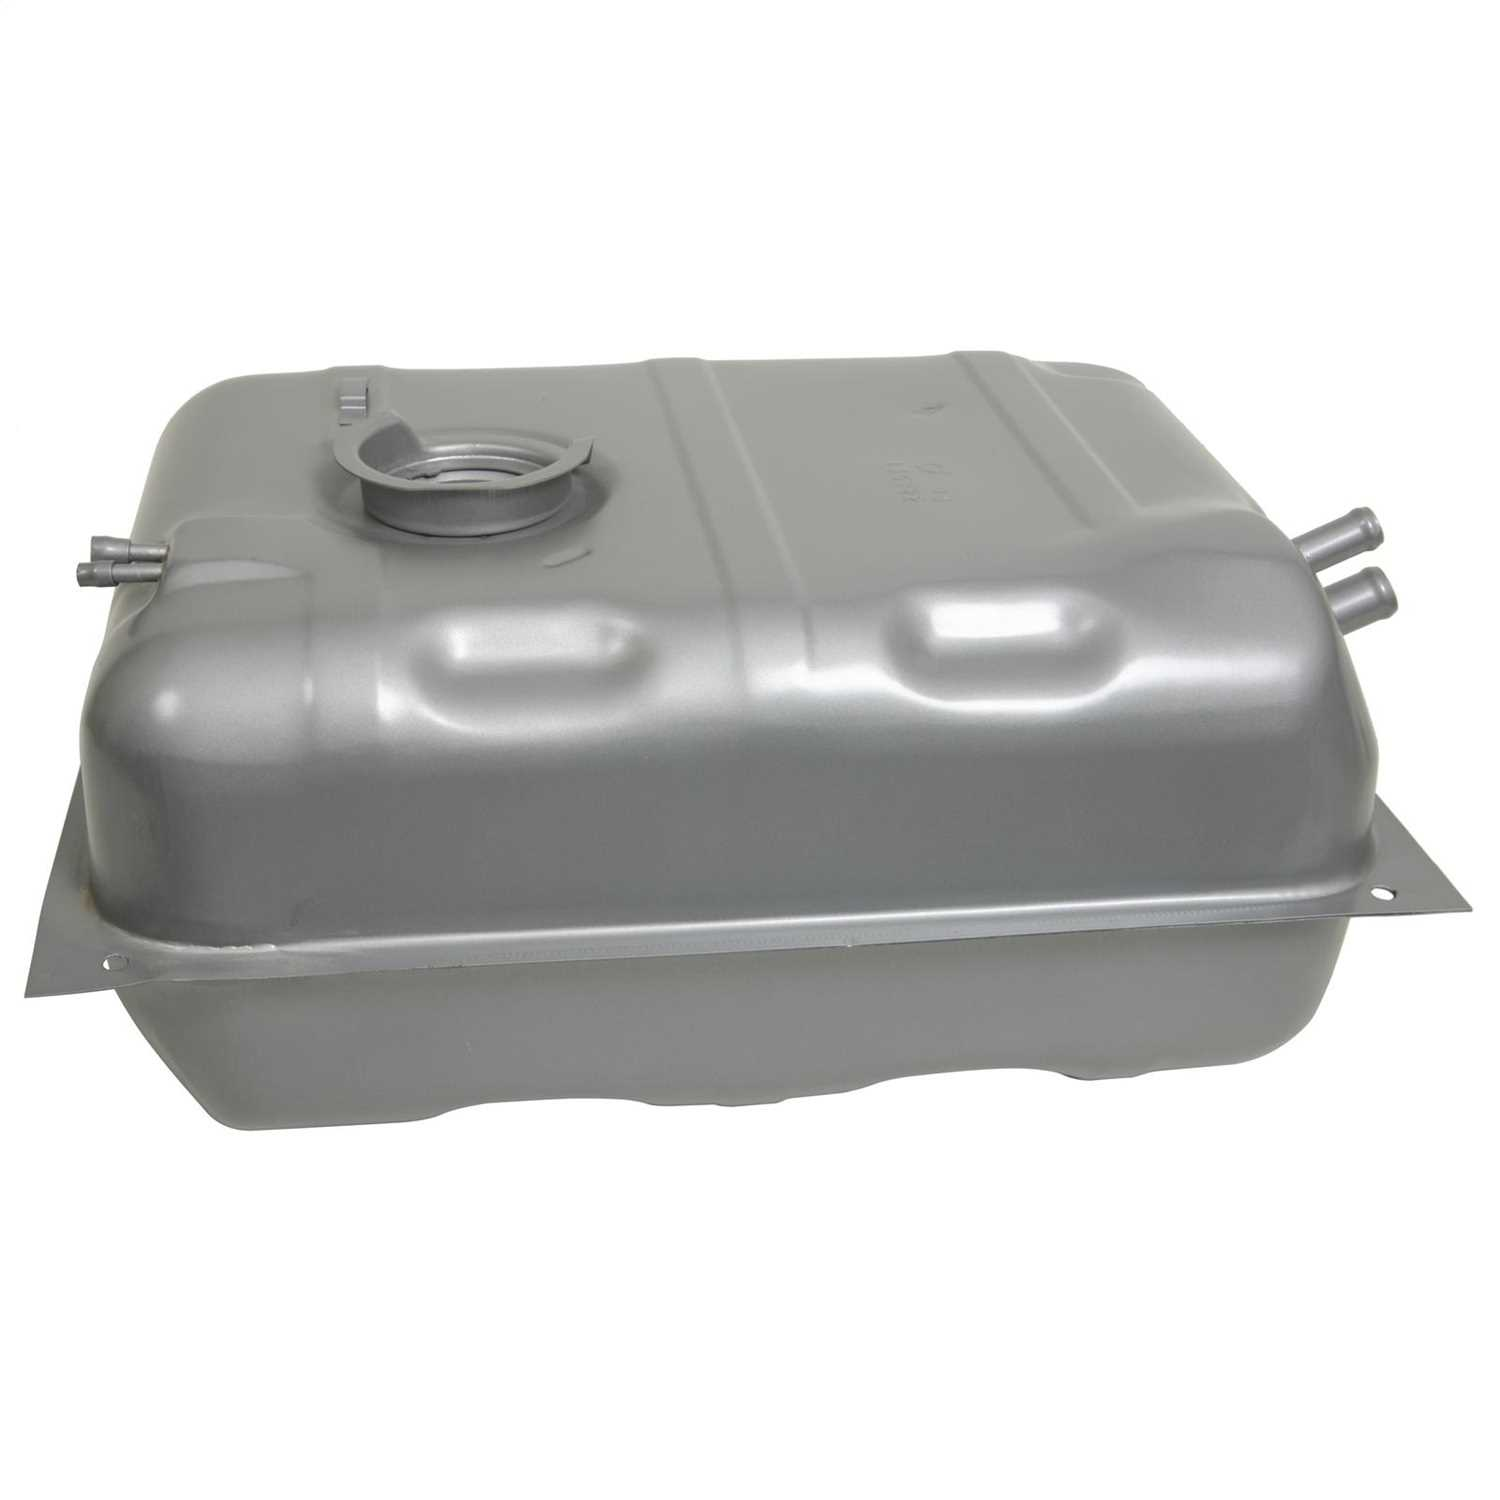 Holley Performance Sniper Fuel Tank 19-510 19-510